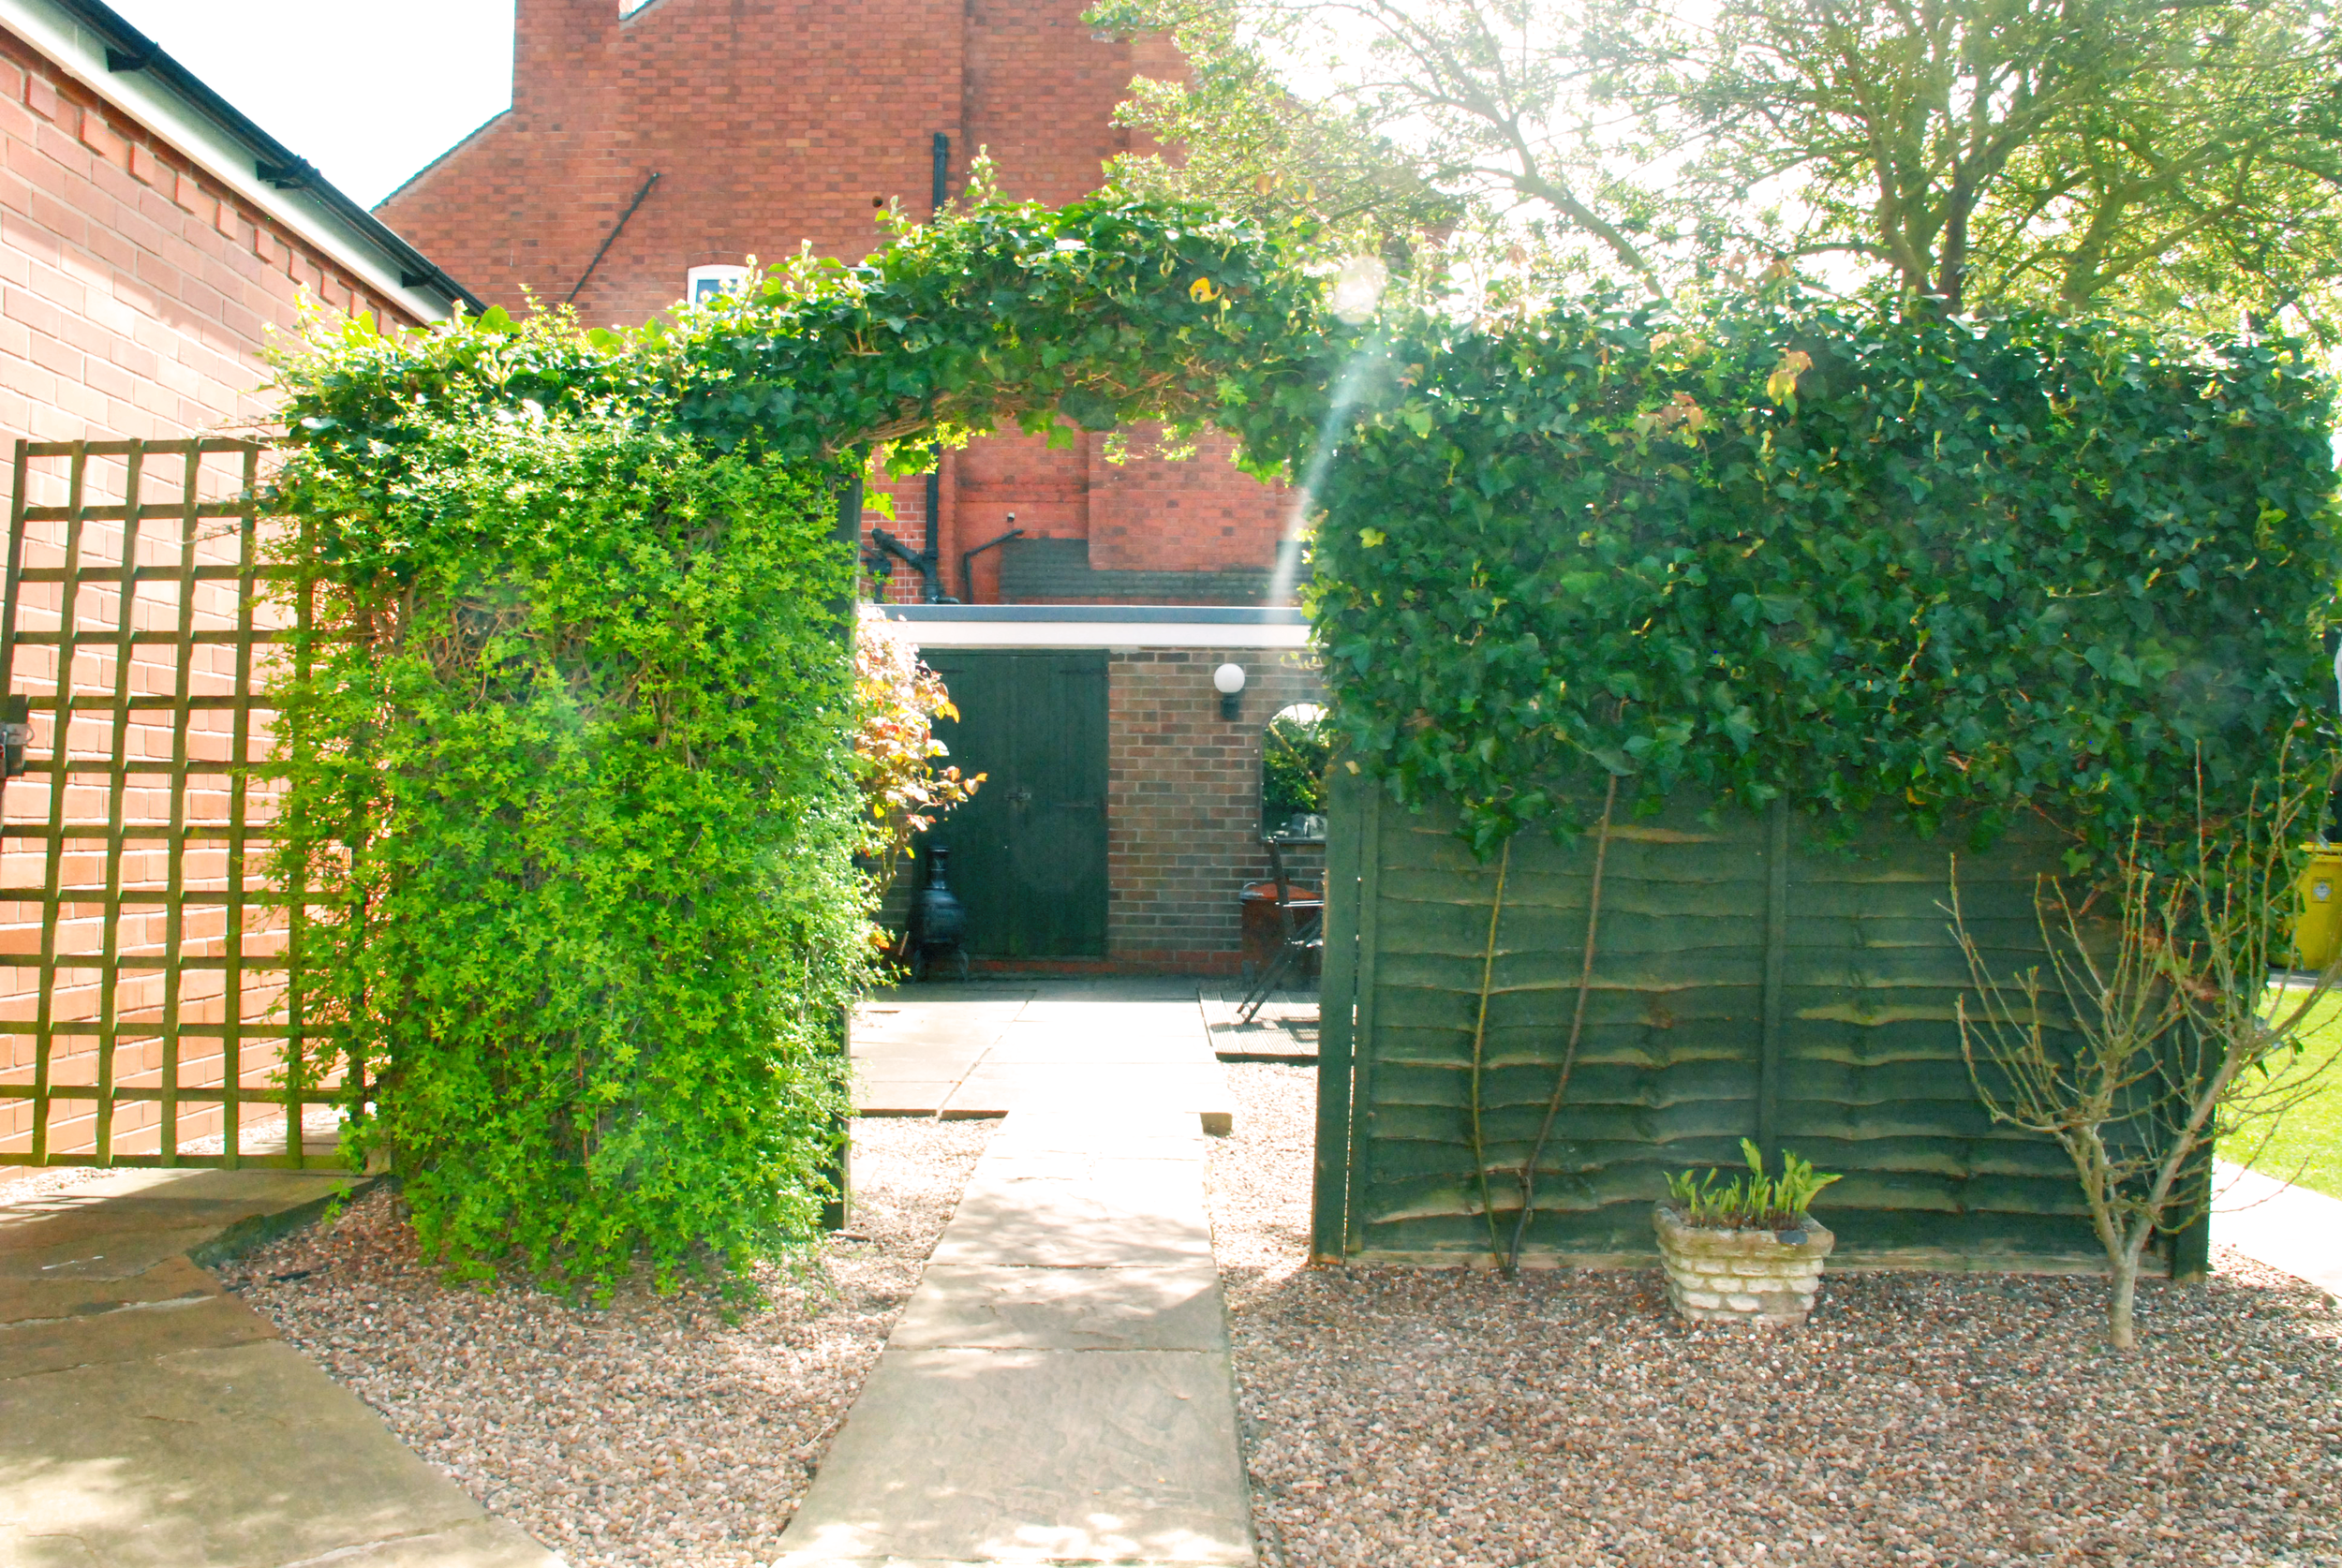 Our Courtyard, an extra place to wonder